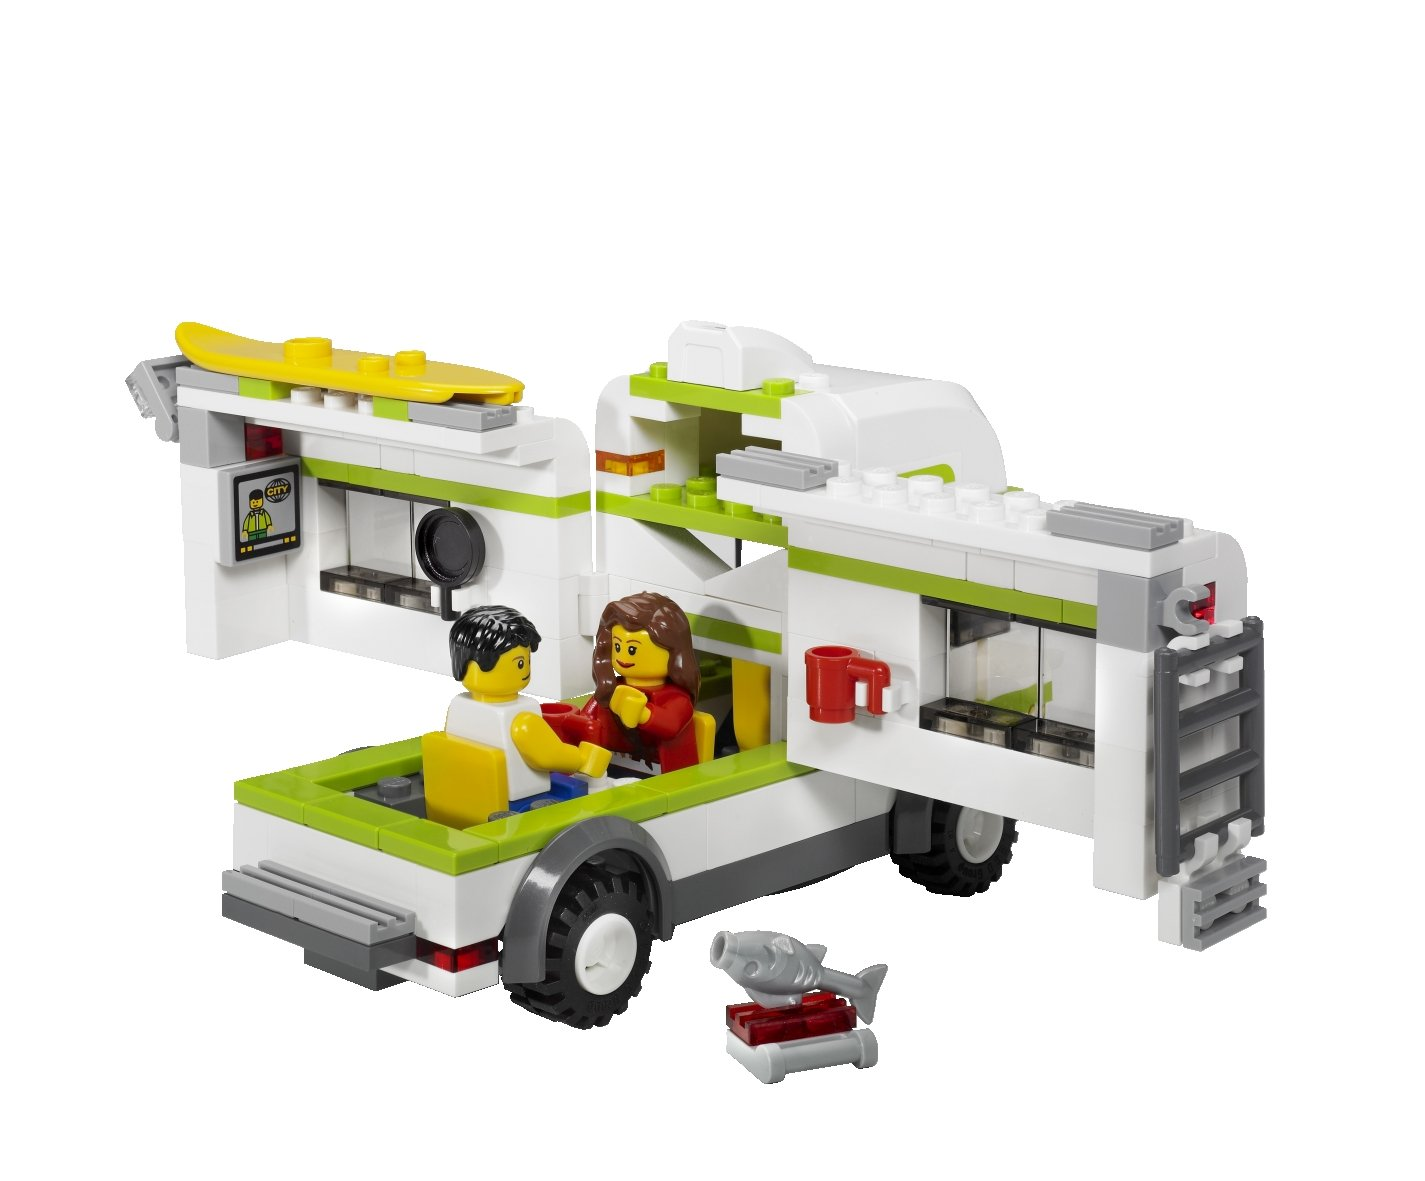 Lego City 7639 Camper Amazon Toys Games